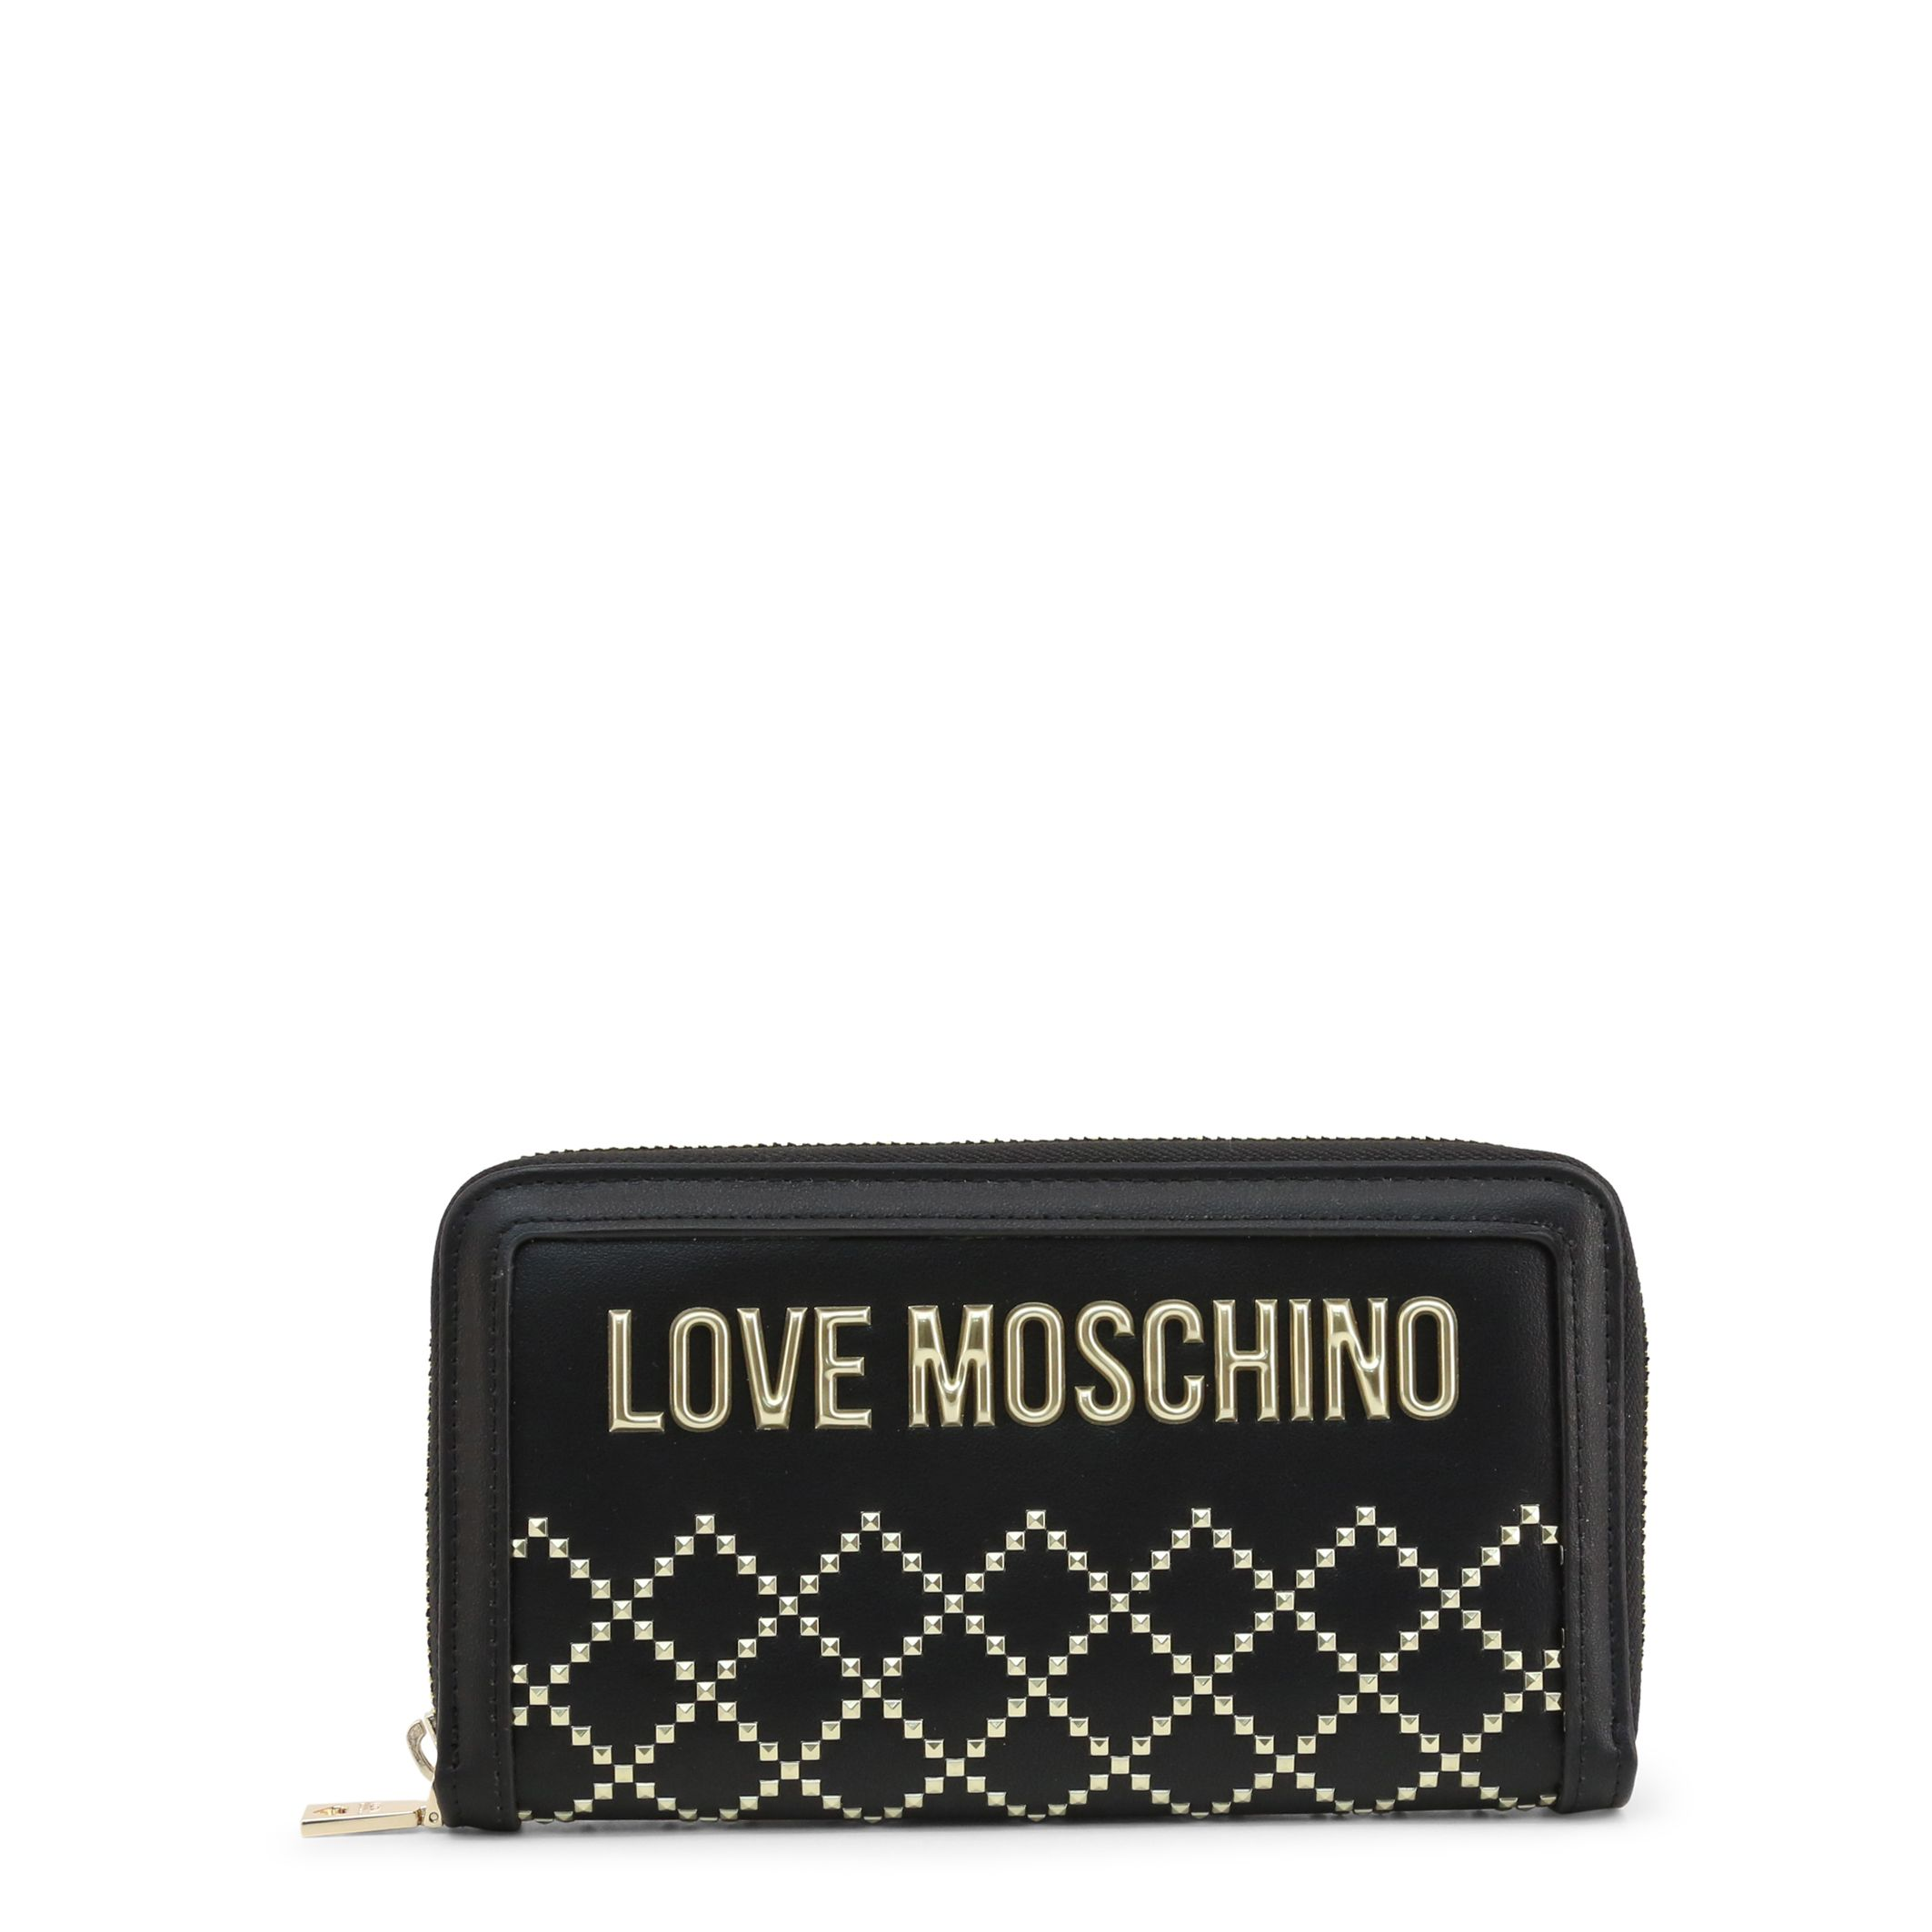 Portefeuilles Love Moschino – JC5618PP1BLG